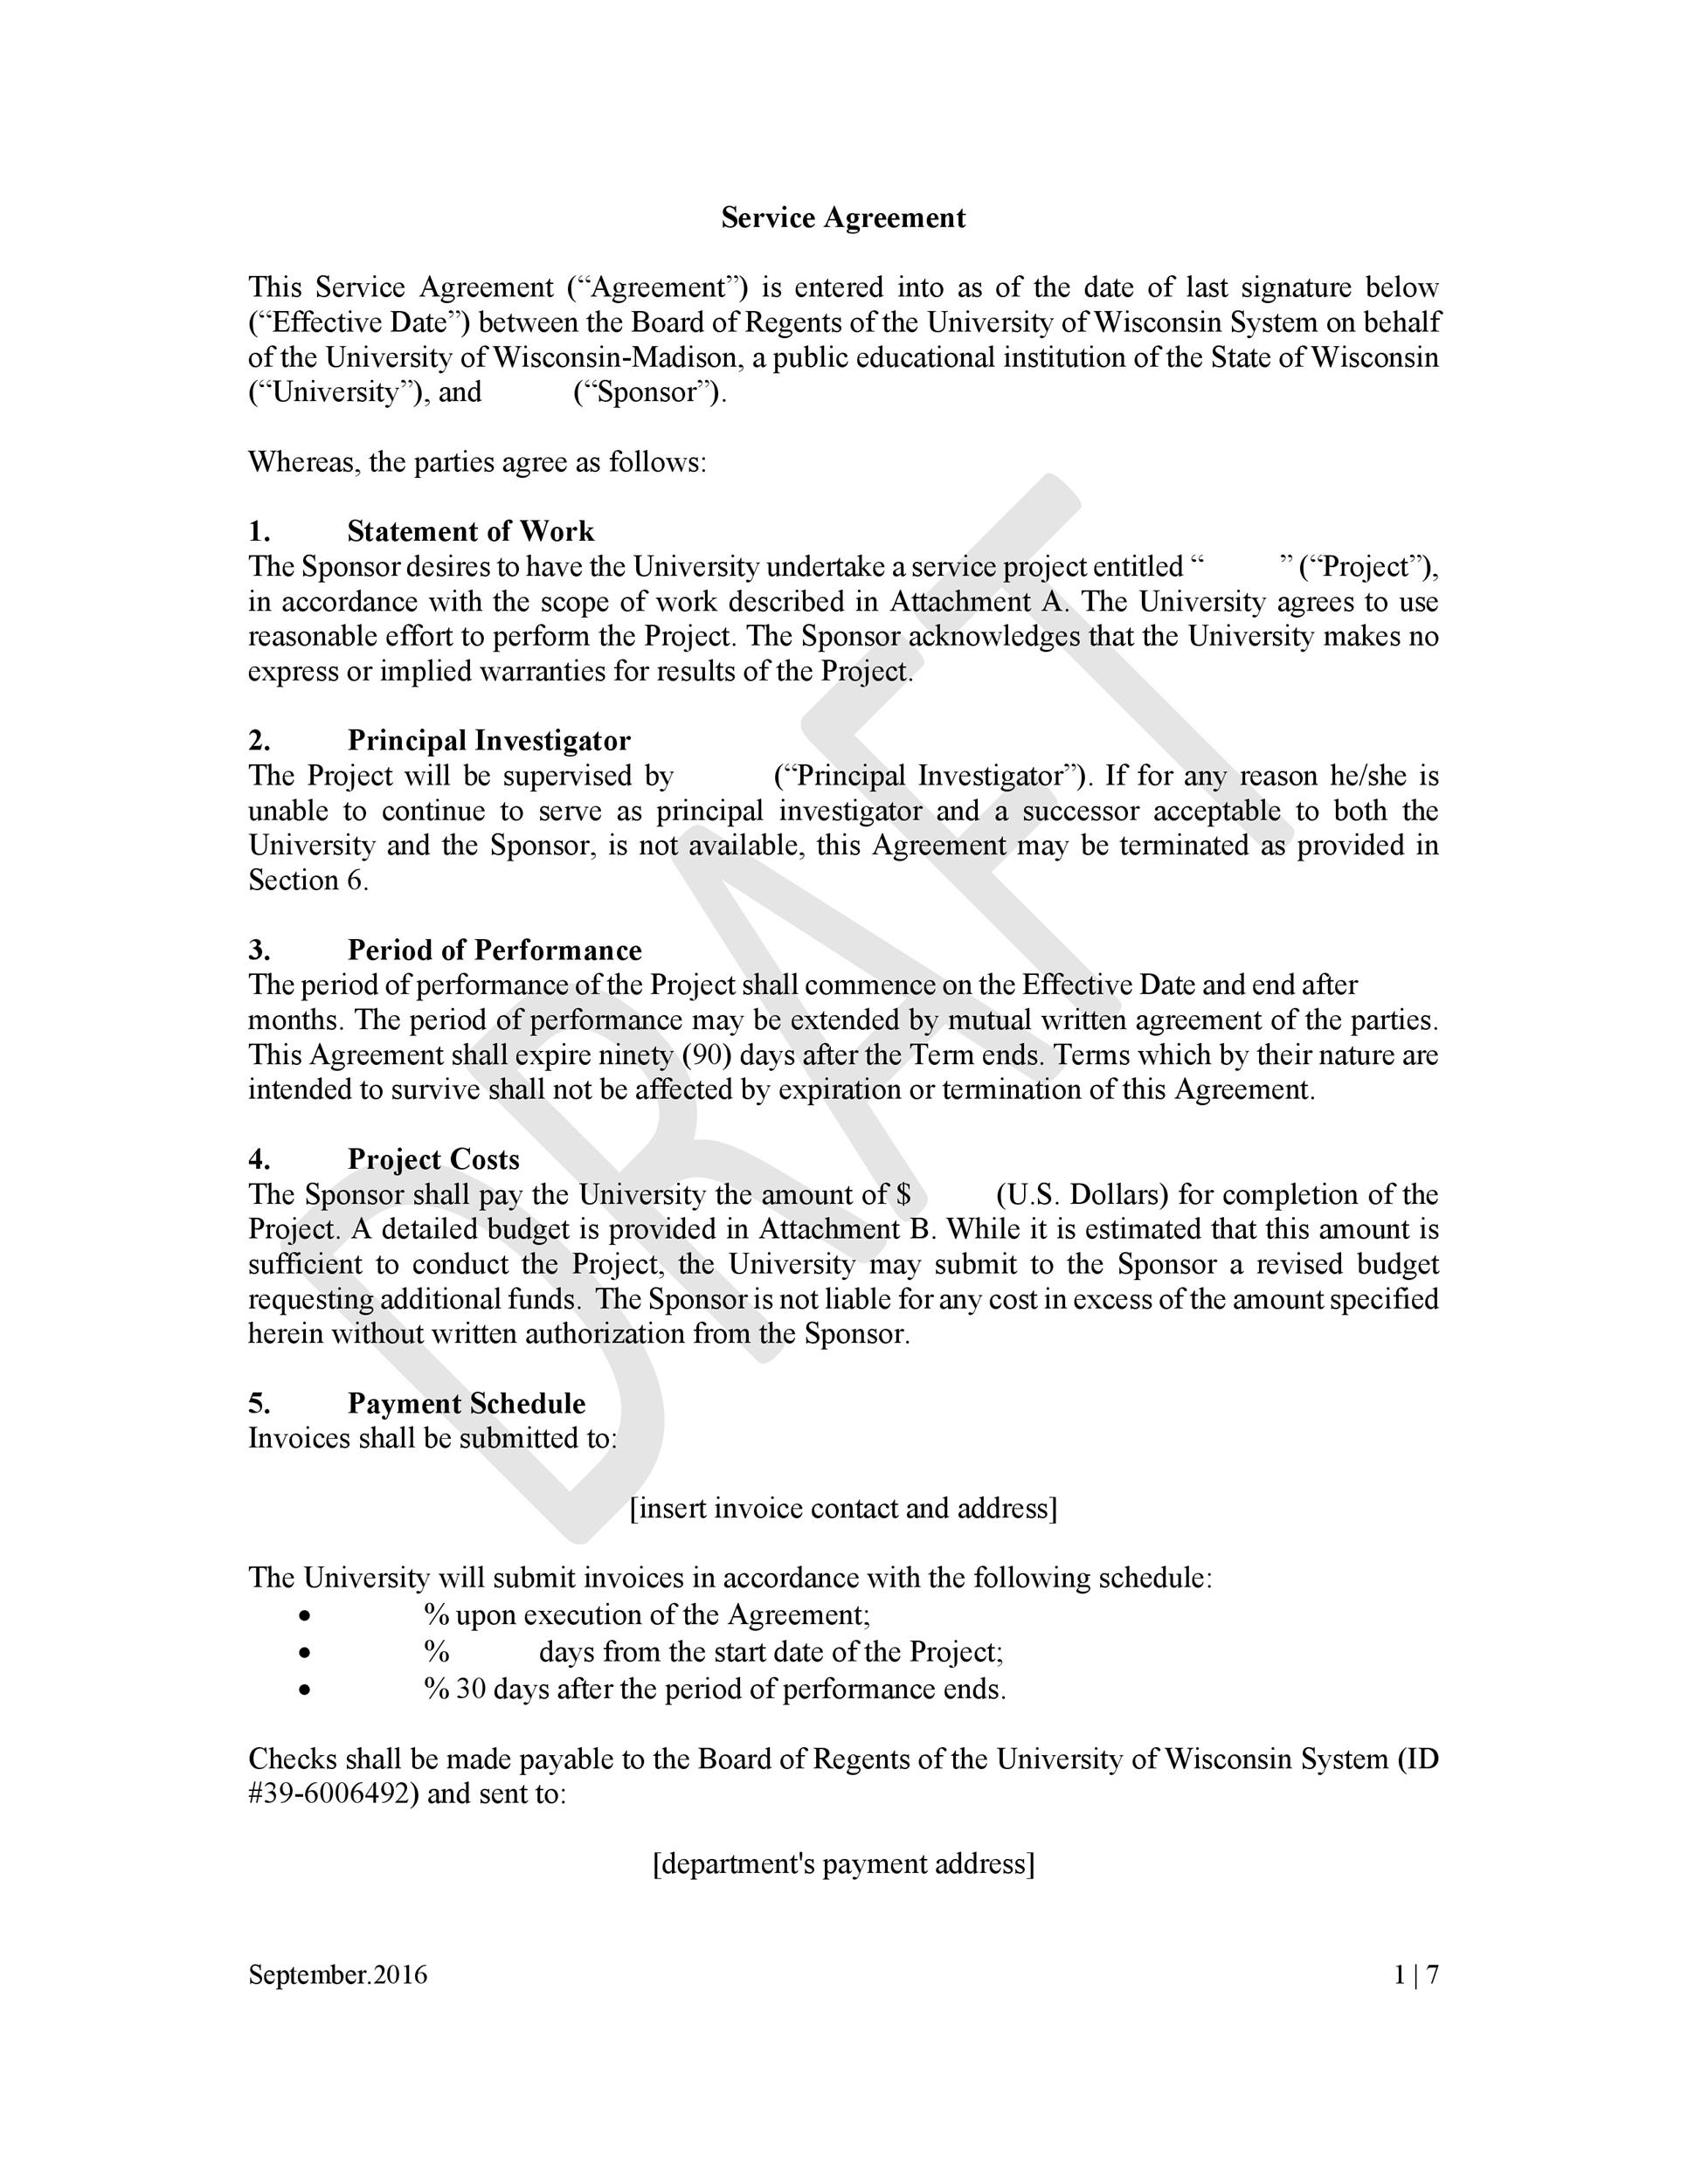 Service Agreement Template Master Services Agreement Template